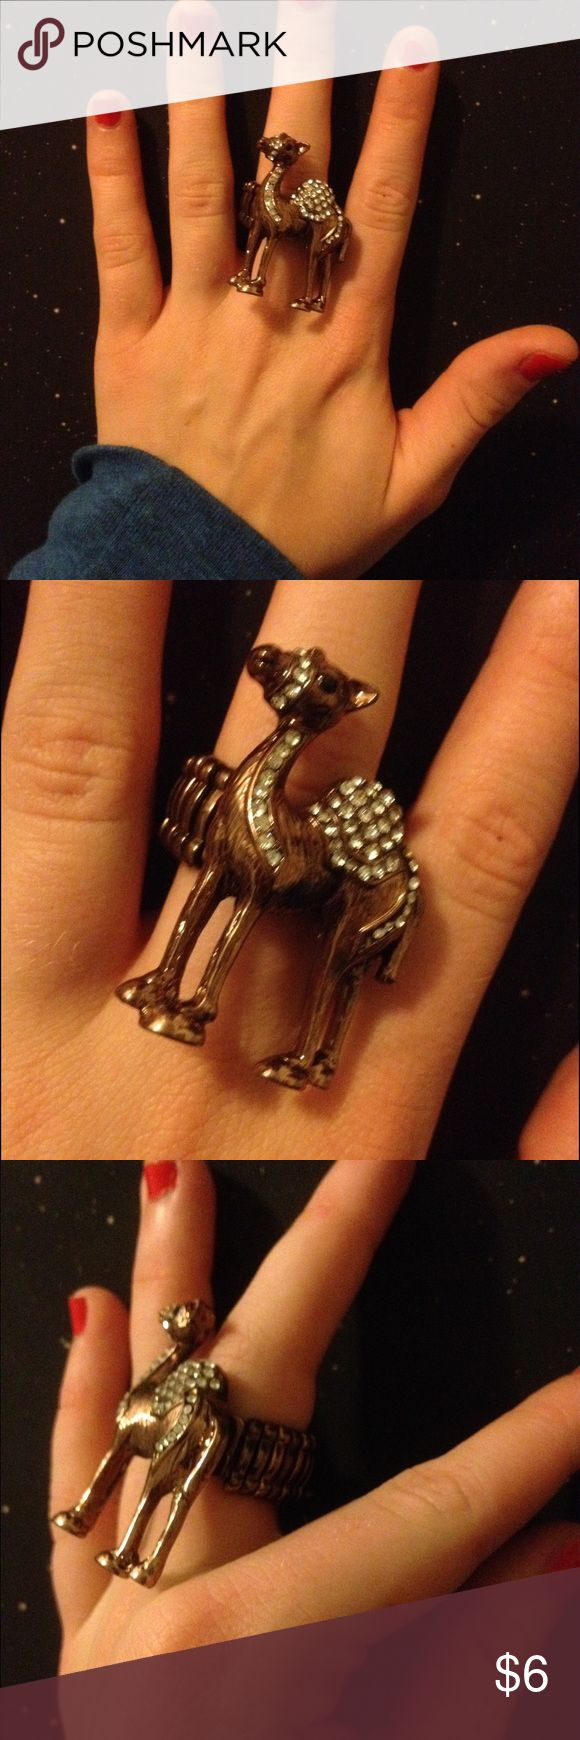 Cute camel ring! Brown and silver camel ring - perfect condition - never been worn! - one size - elastic ring band Rue 21 Jewelry Rings